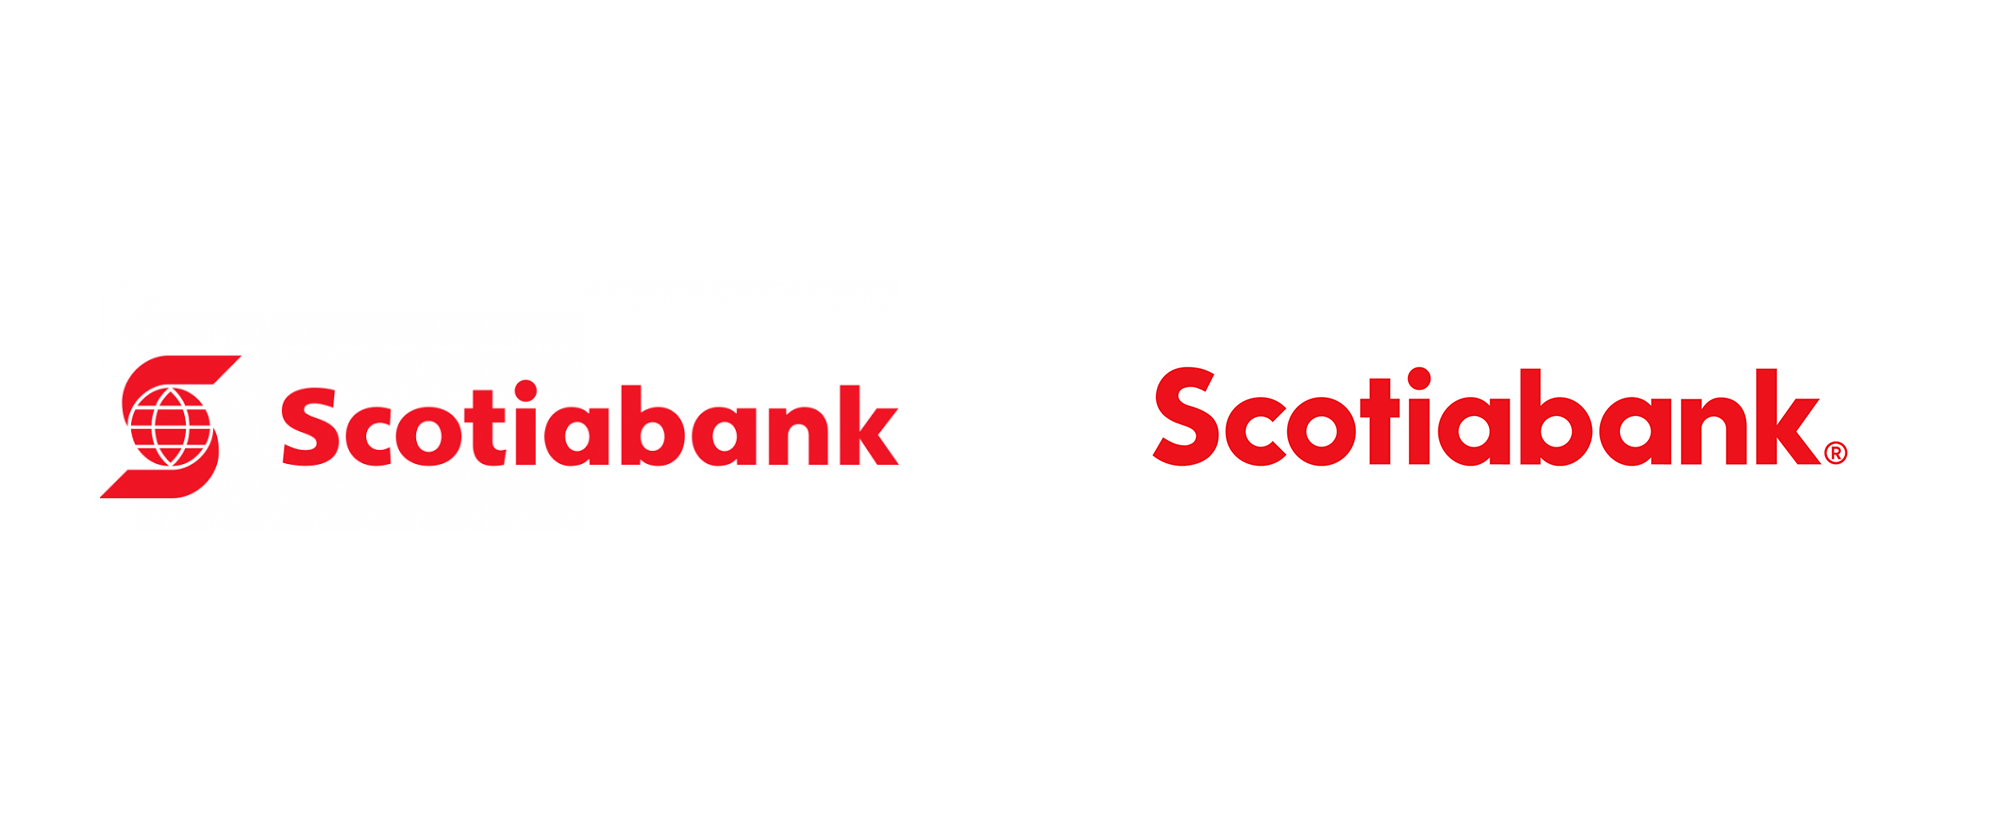 New Logo and Identity for Scotiabank